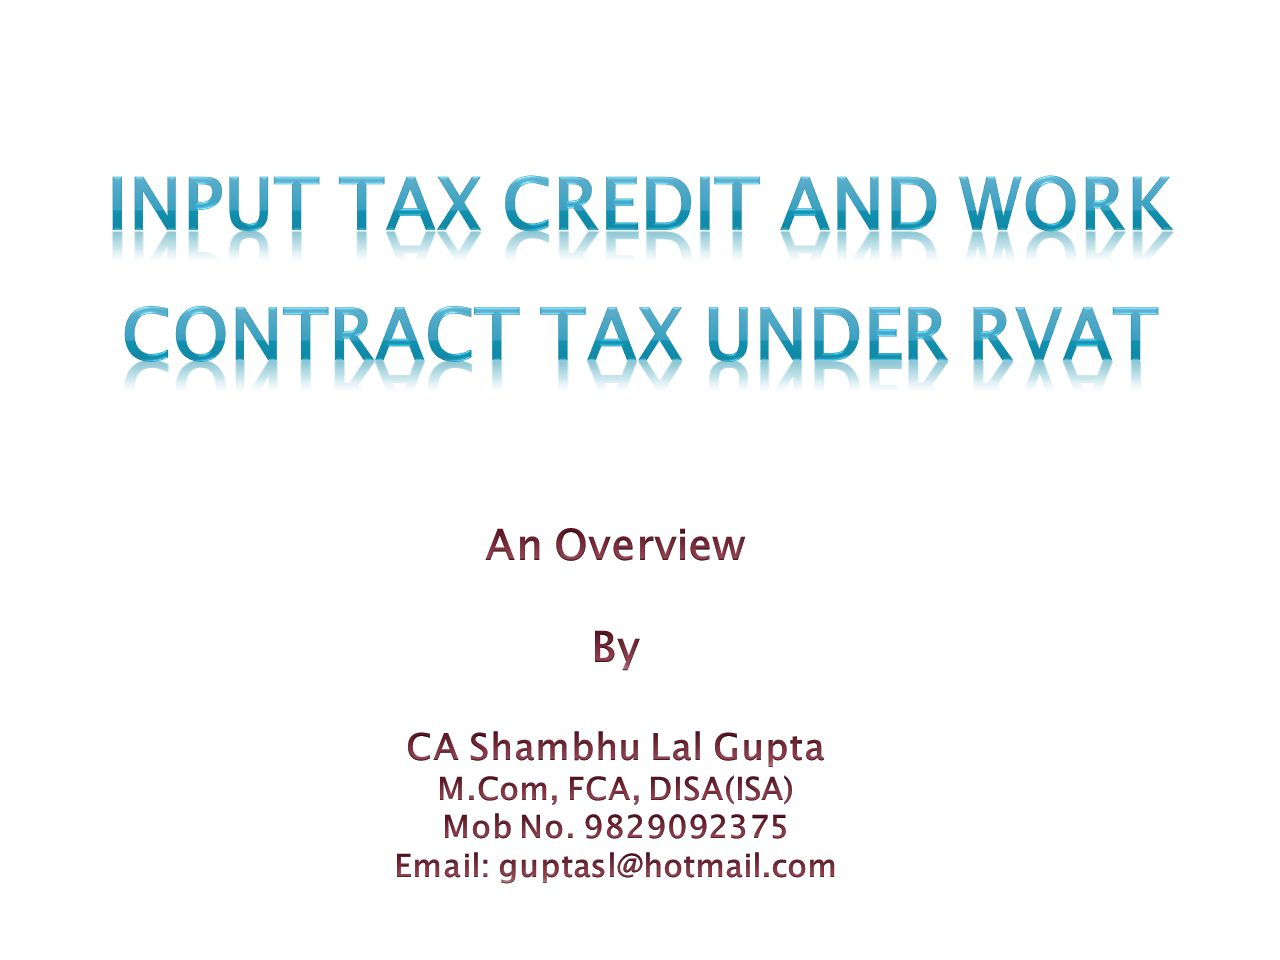 INPUT TAX CREDIT AND WORK CONTRACT TAX UNDER RVAT